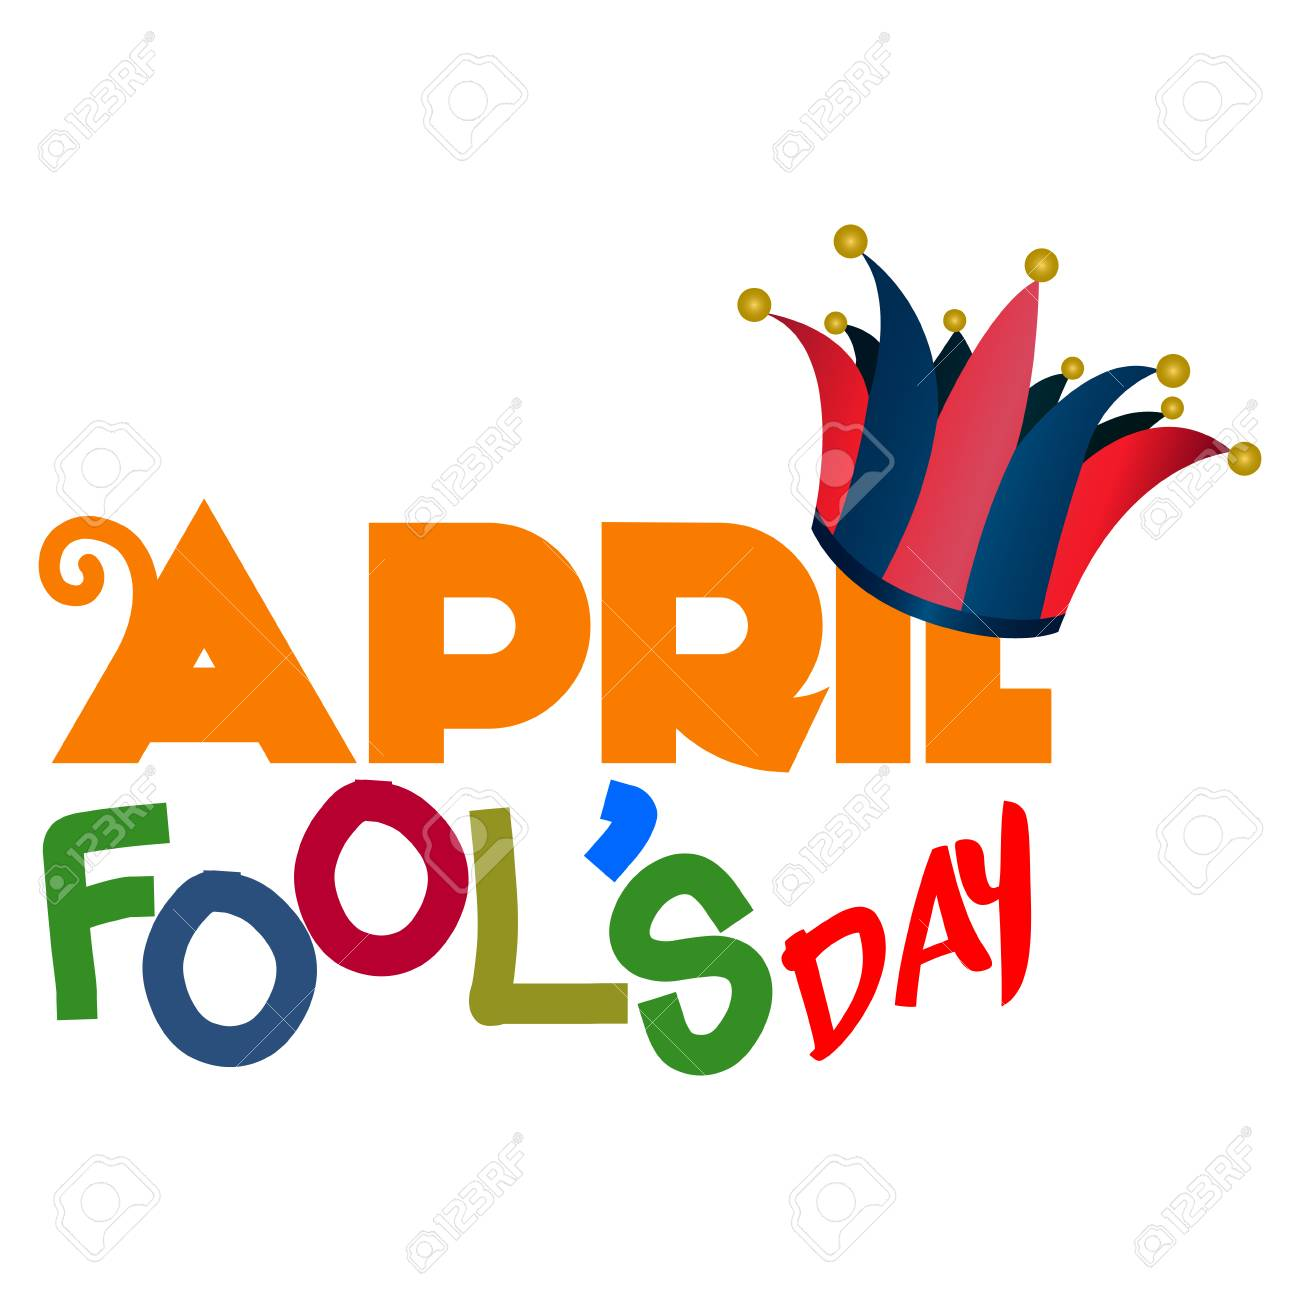 April Fools Day Graphic Design, Vector Illustration Royalty Free Cliparts,  Vectors, And Stock Illustration. Image 74367258.